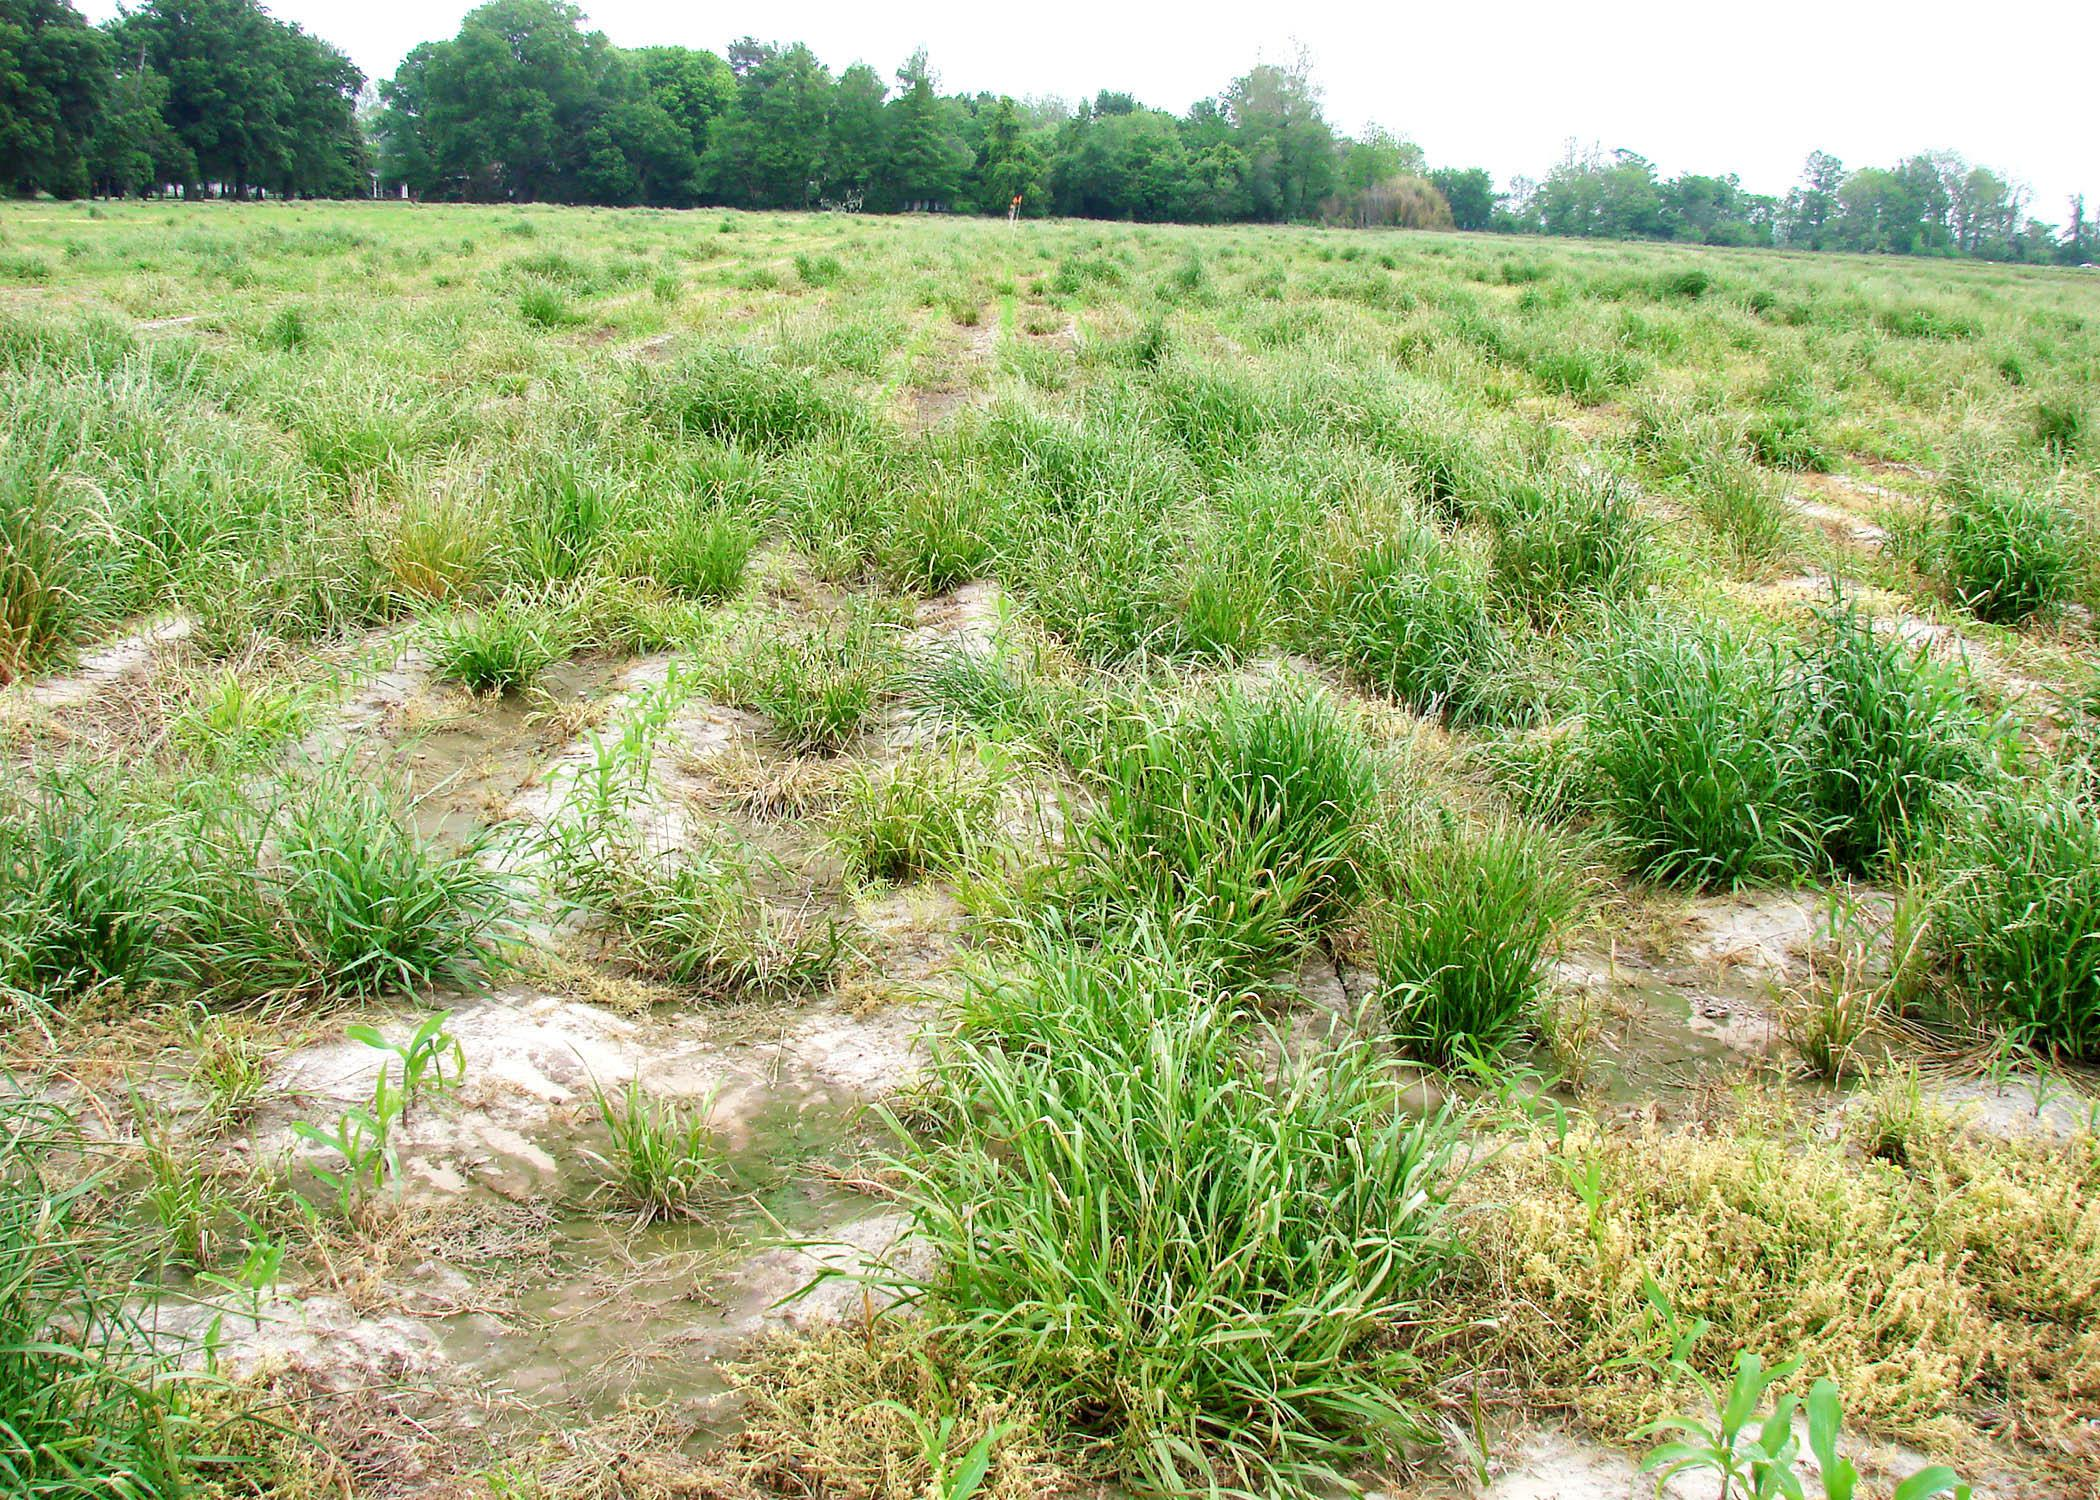 Mississippi State University weed scientists are leading the fight against glyphosate-resistant Italian ryegrass, such as this growing in a production corn field in Washington County in early spring 2013. (Photo by MSU Delta Research and Extension Center/Jason Bond)